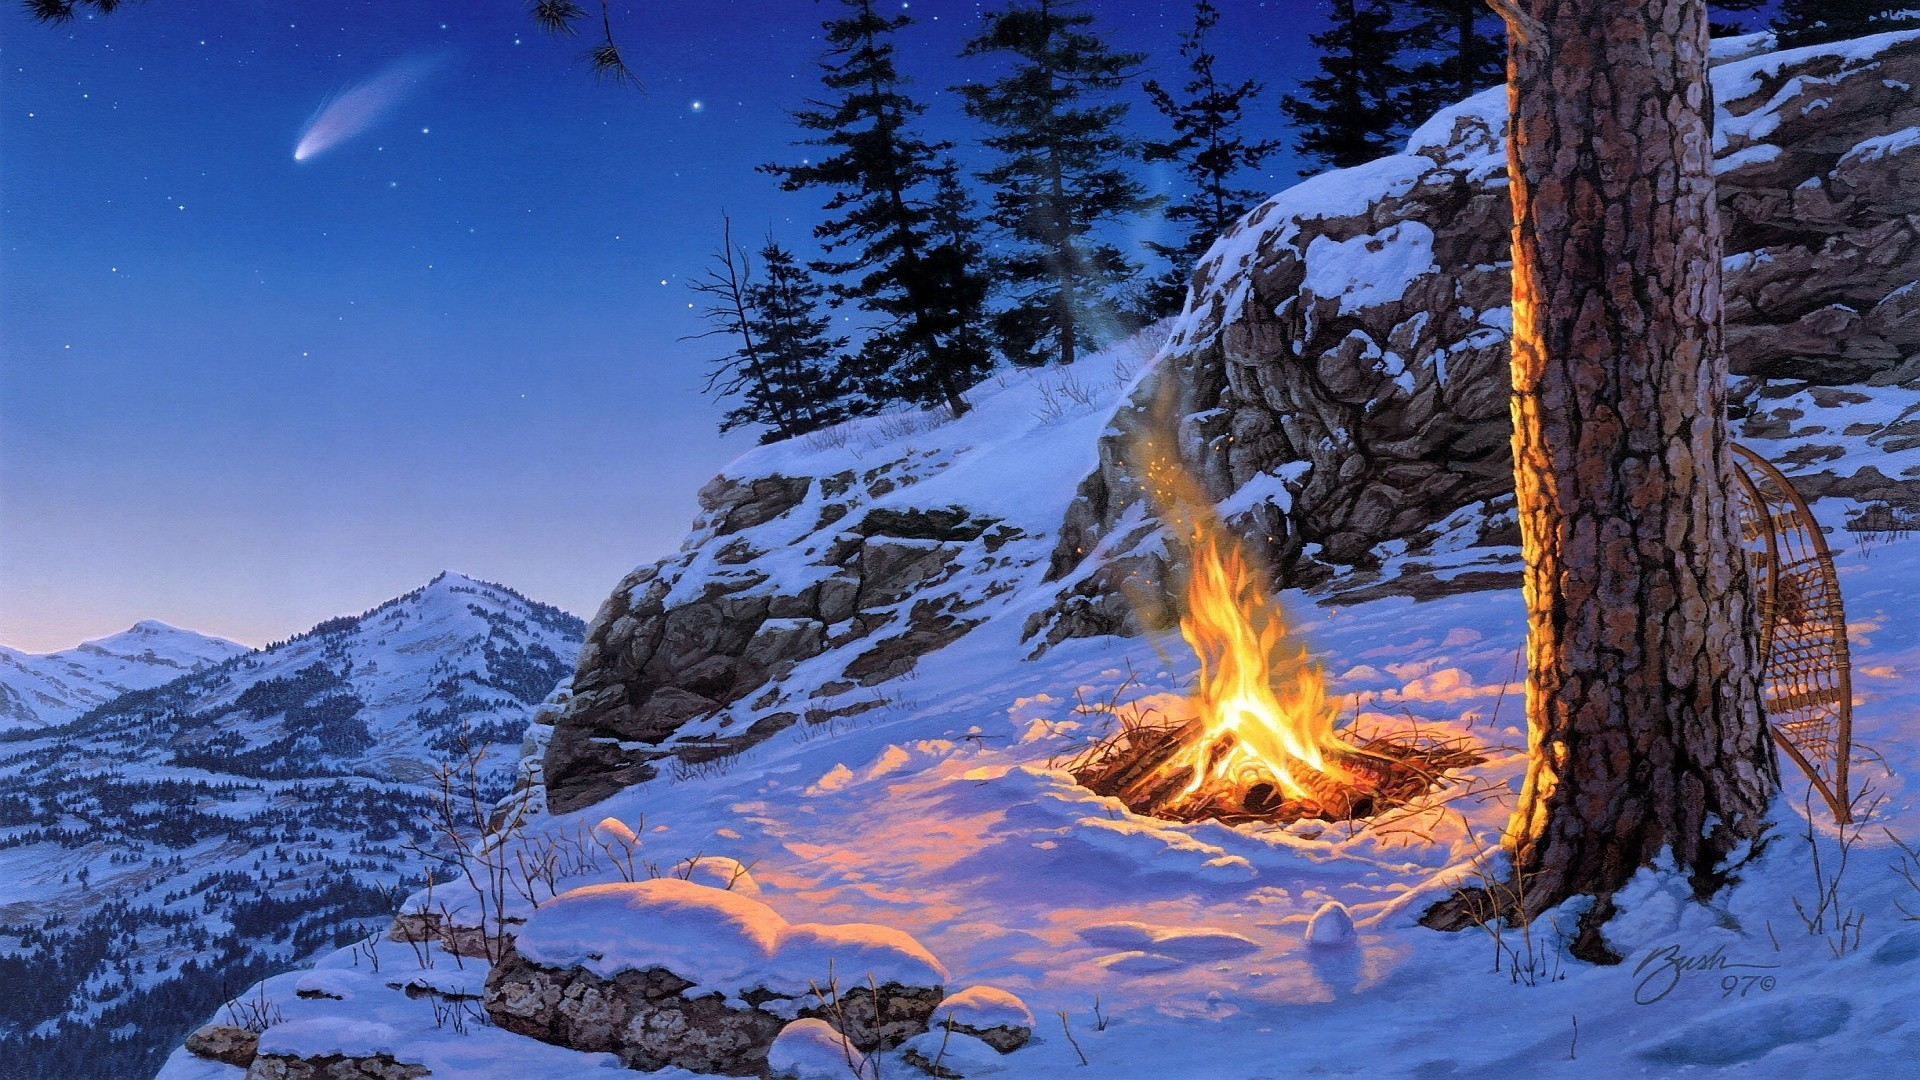 Fire on the snowy mountain wallpaper